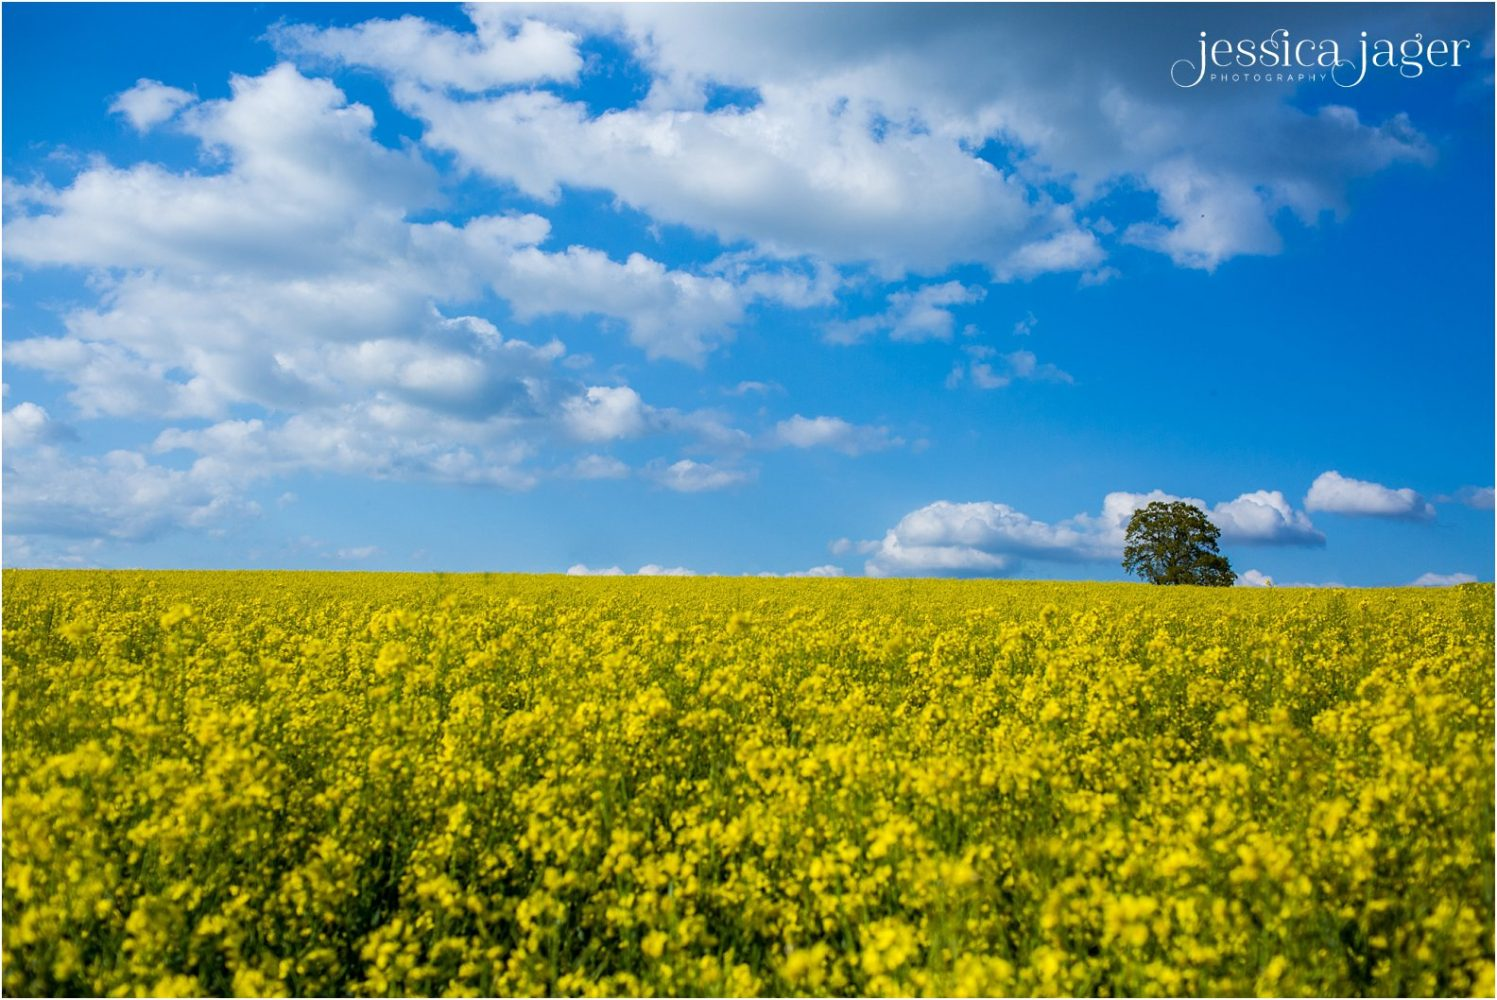 Rapeseed field under blue sky